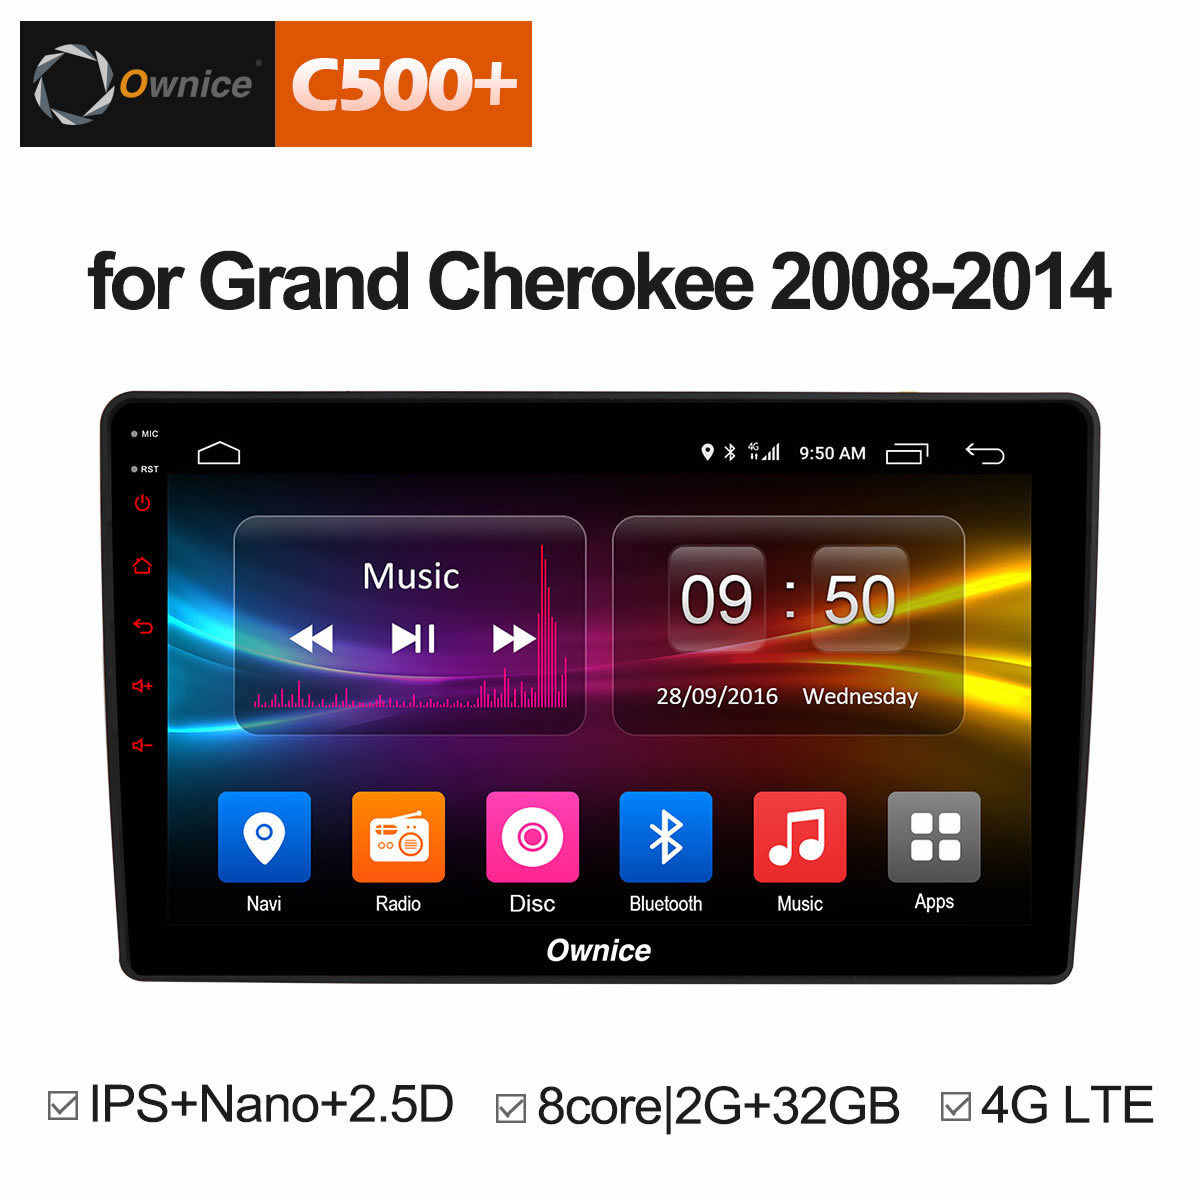 "Ownice C500 + G10 10.1 ""1024*600 2.5D IPS Android 8.1 8 Core Auto Stereo GPS Navigatie Radio voor Jeep Grand Cherokee 2008-2014"